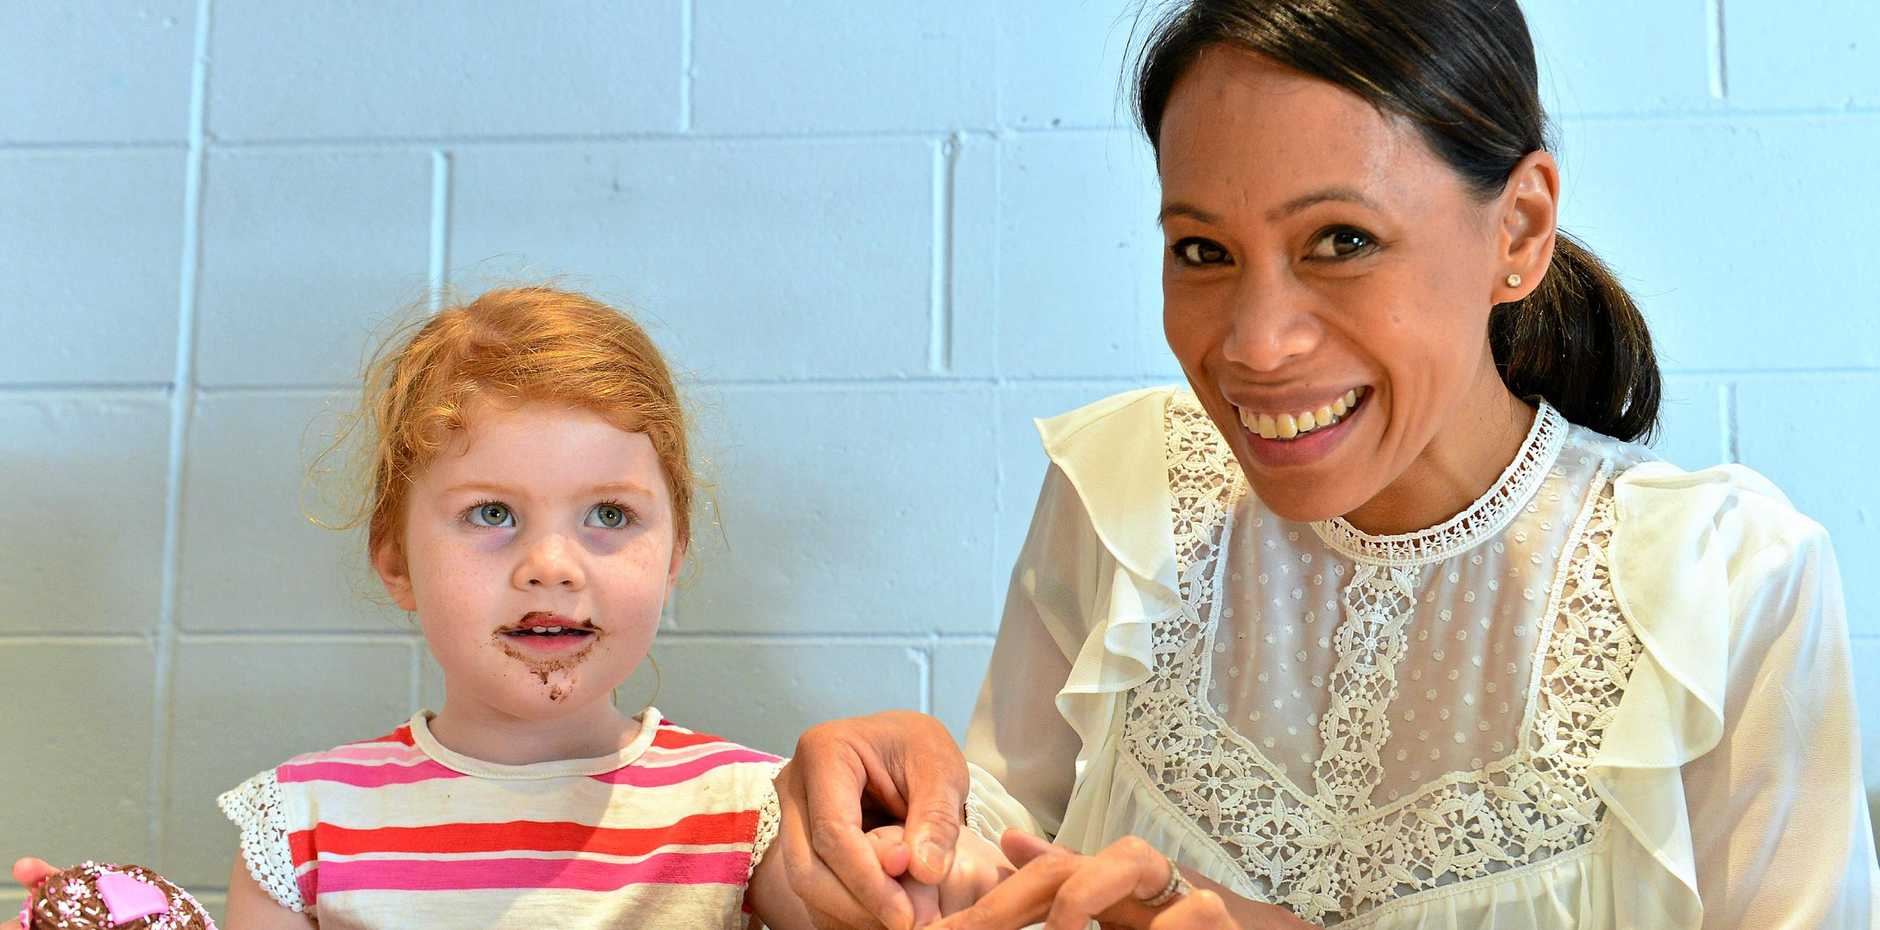 Artist Marie Ramos records the fingerprints of Emmy O'Hehir, 4, for the Heart as Big as Yours project.